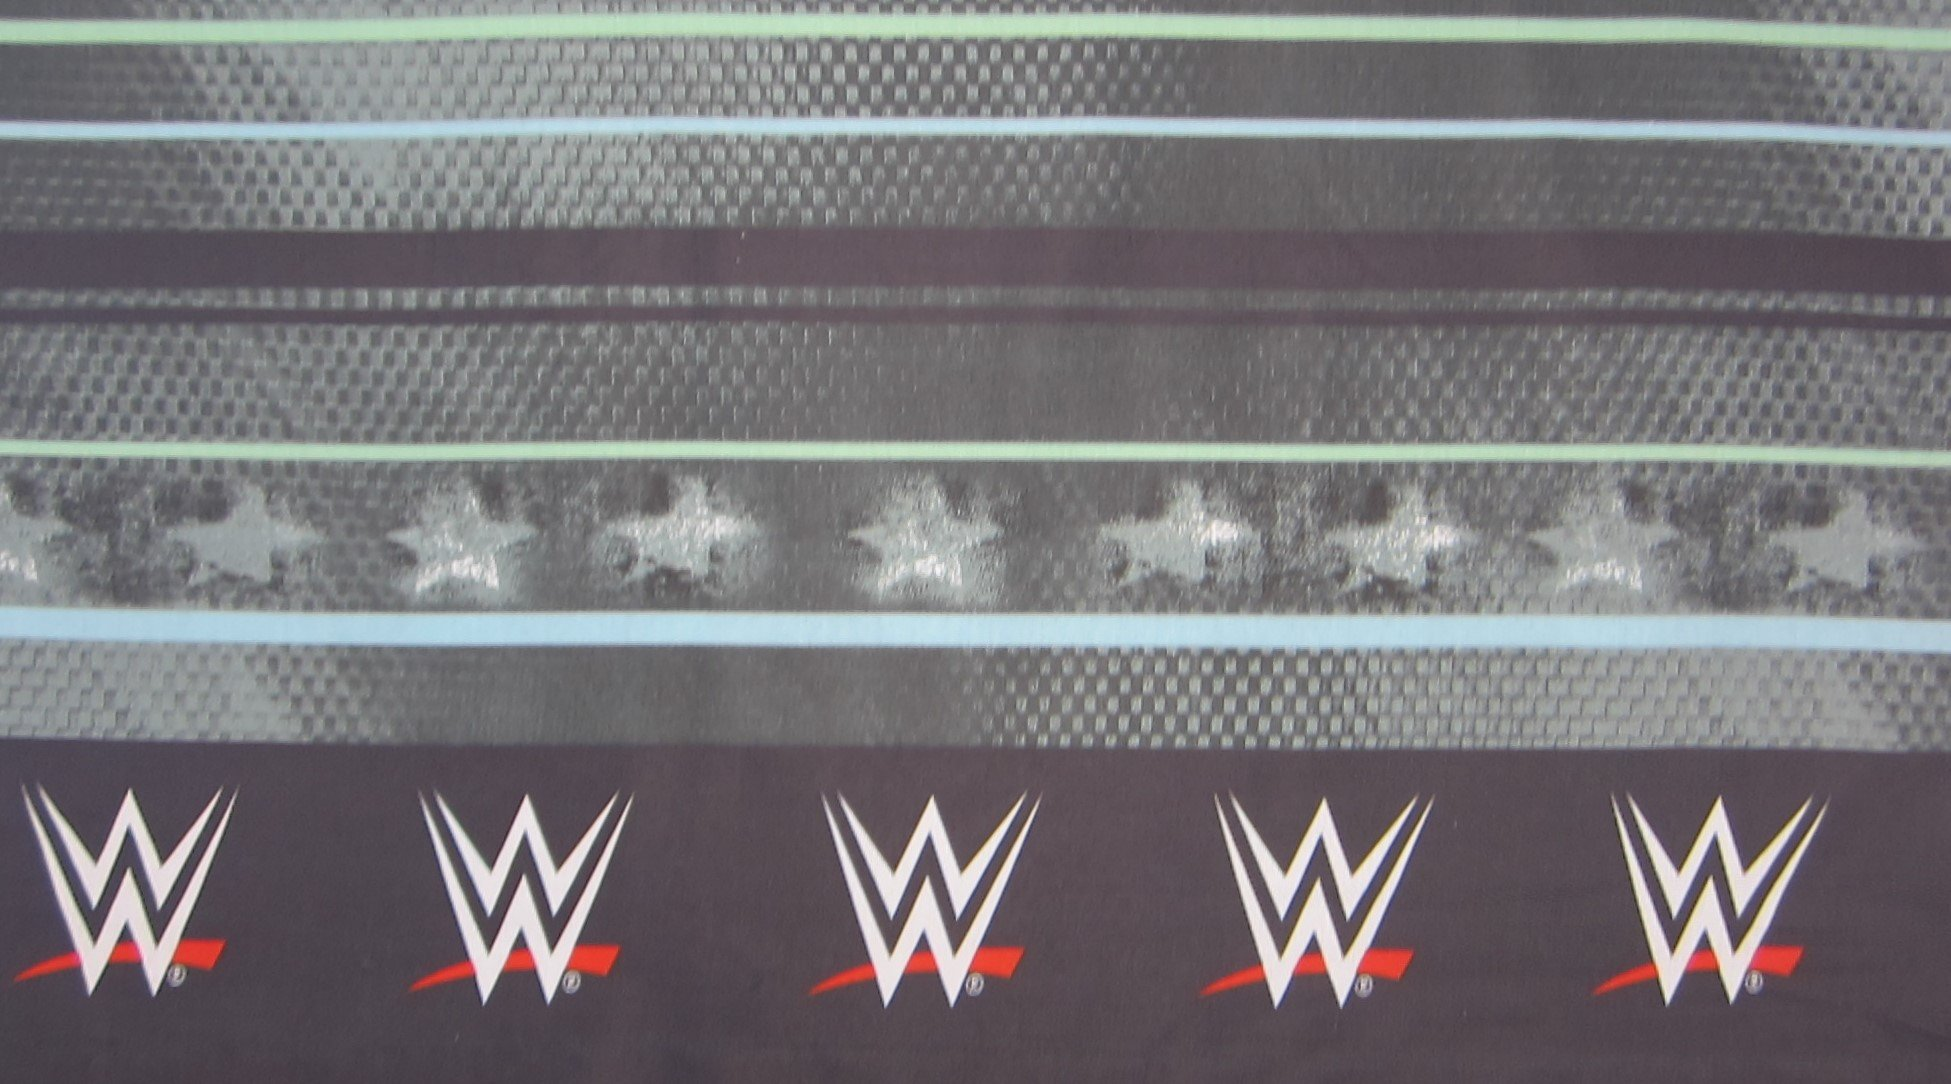 WWE Industrial Strength Polyester (FLAT SHEET ONLY) Size TWIN Boys Girls Kids Bedding